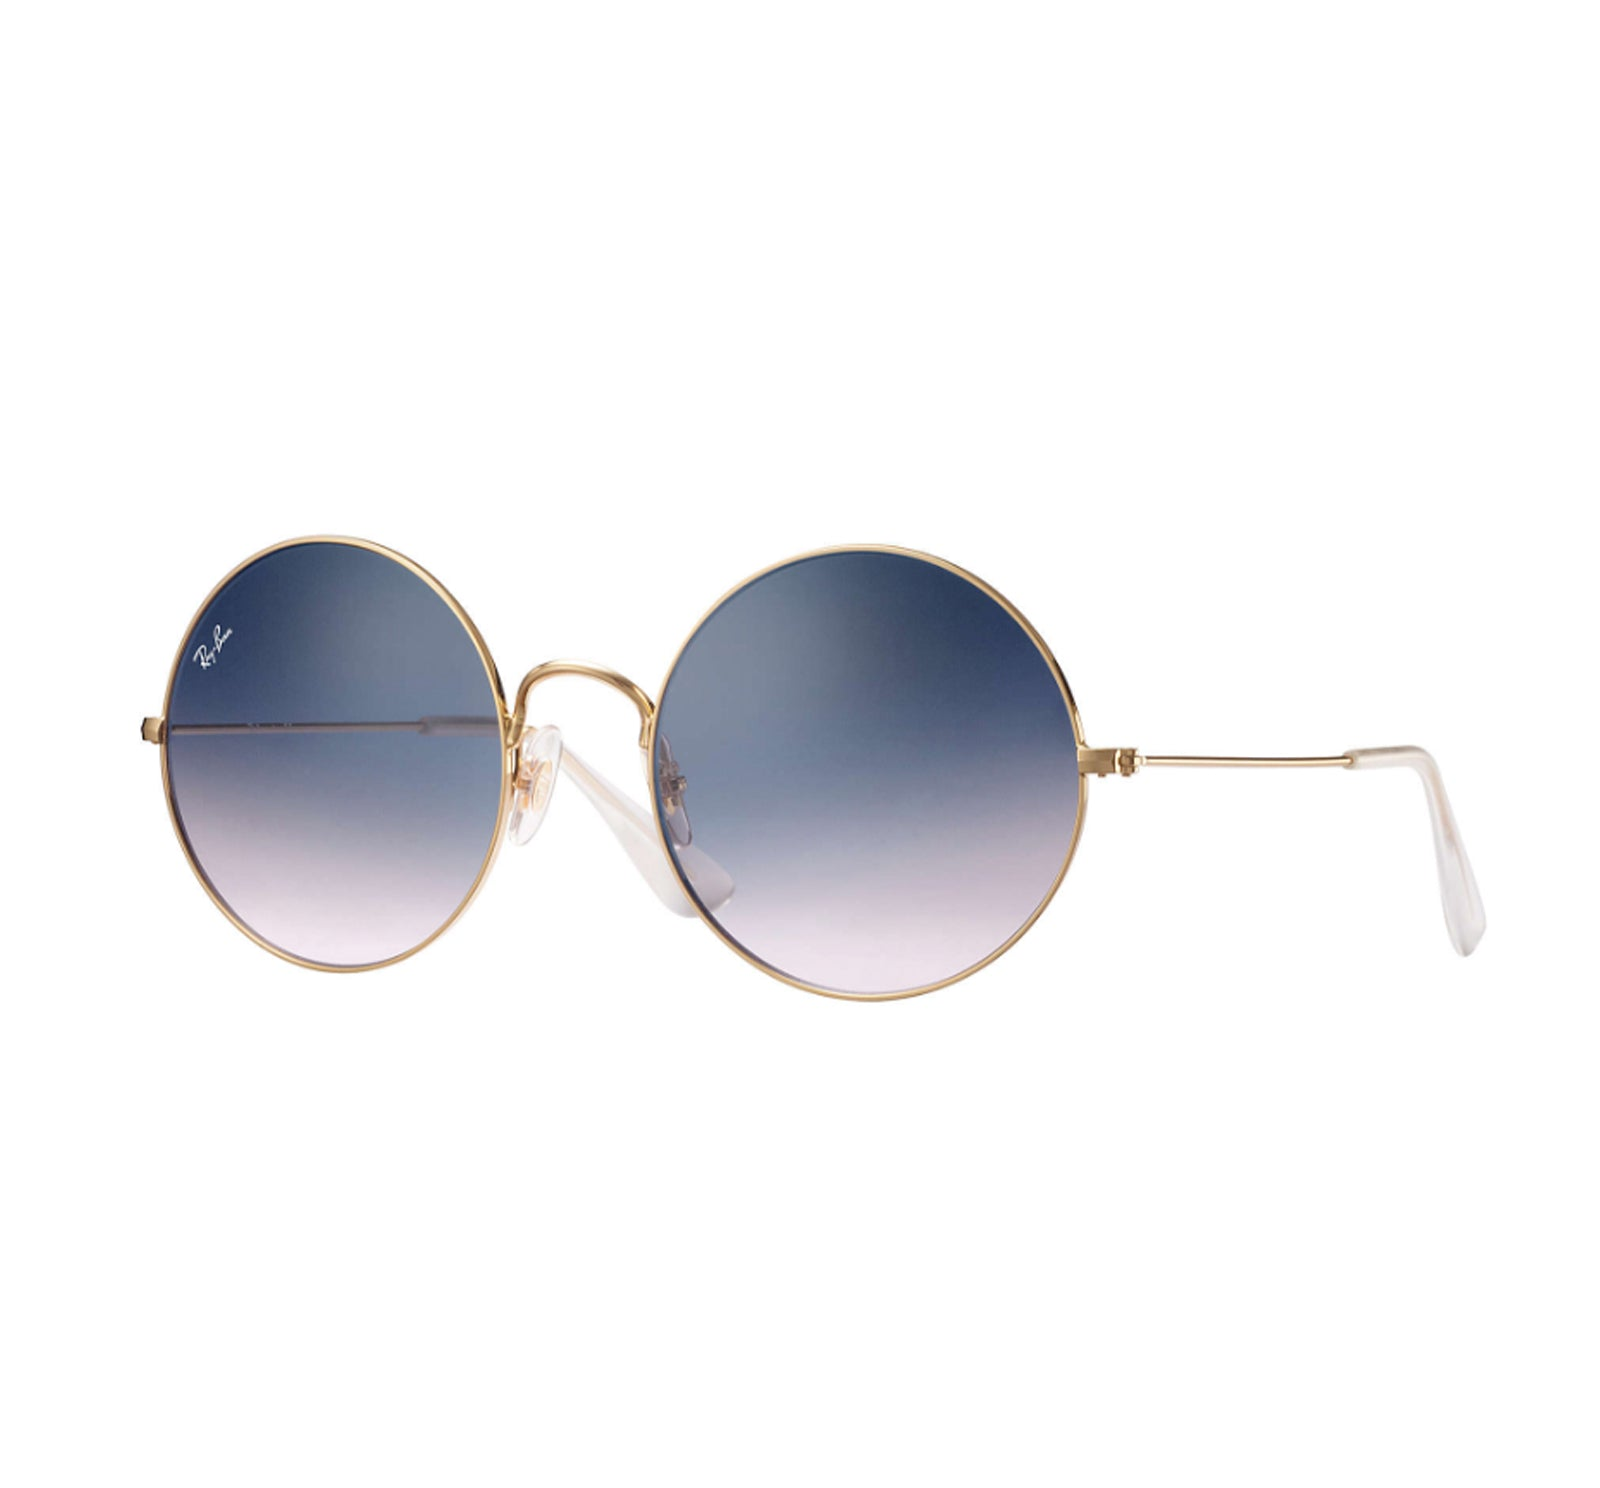 Ray-Ban Ja-Jo Women s Sunglasses - Gold Frame Gradient Blue Lens - Surf  Station Store 9995e6f82f